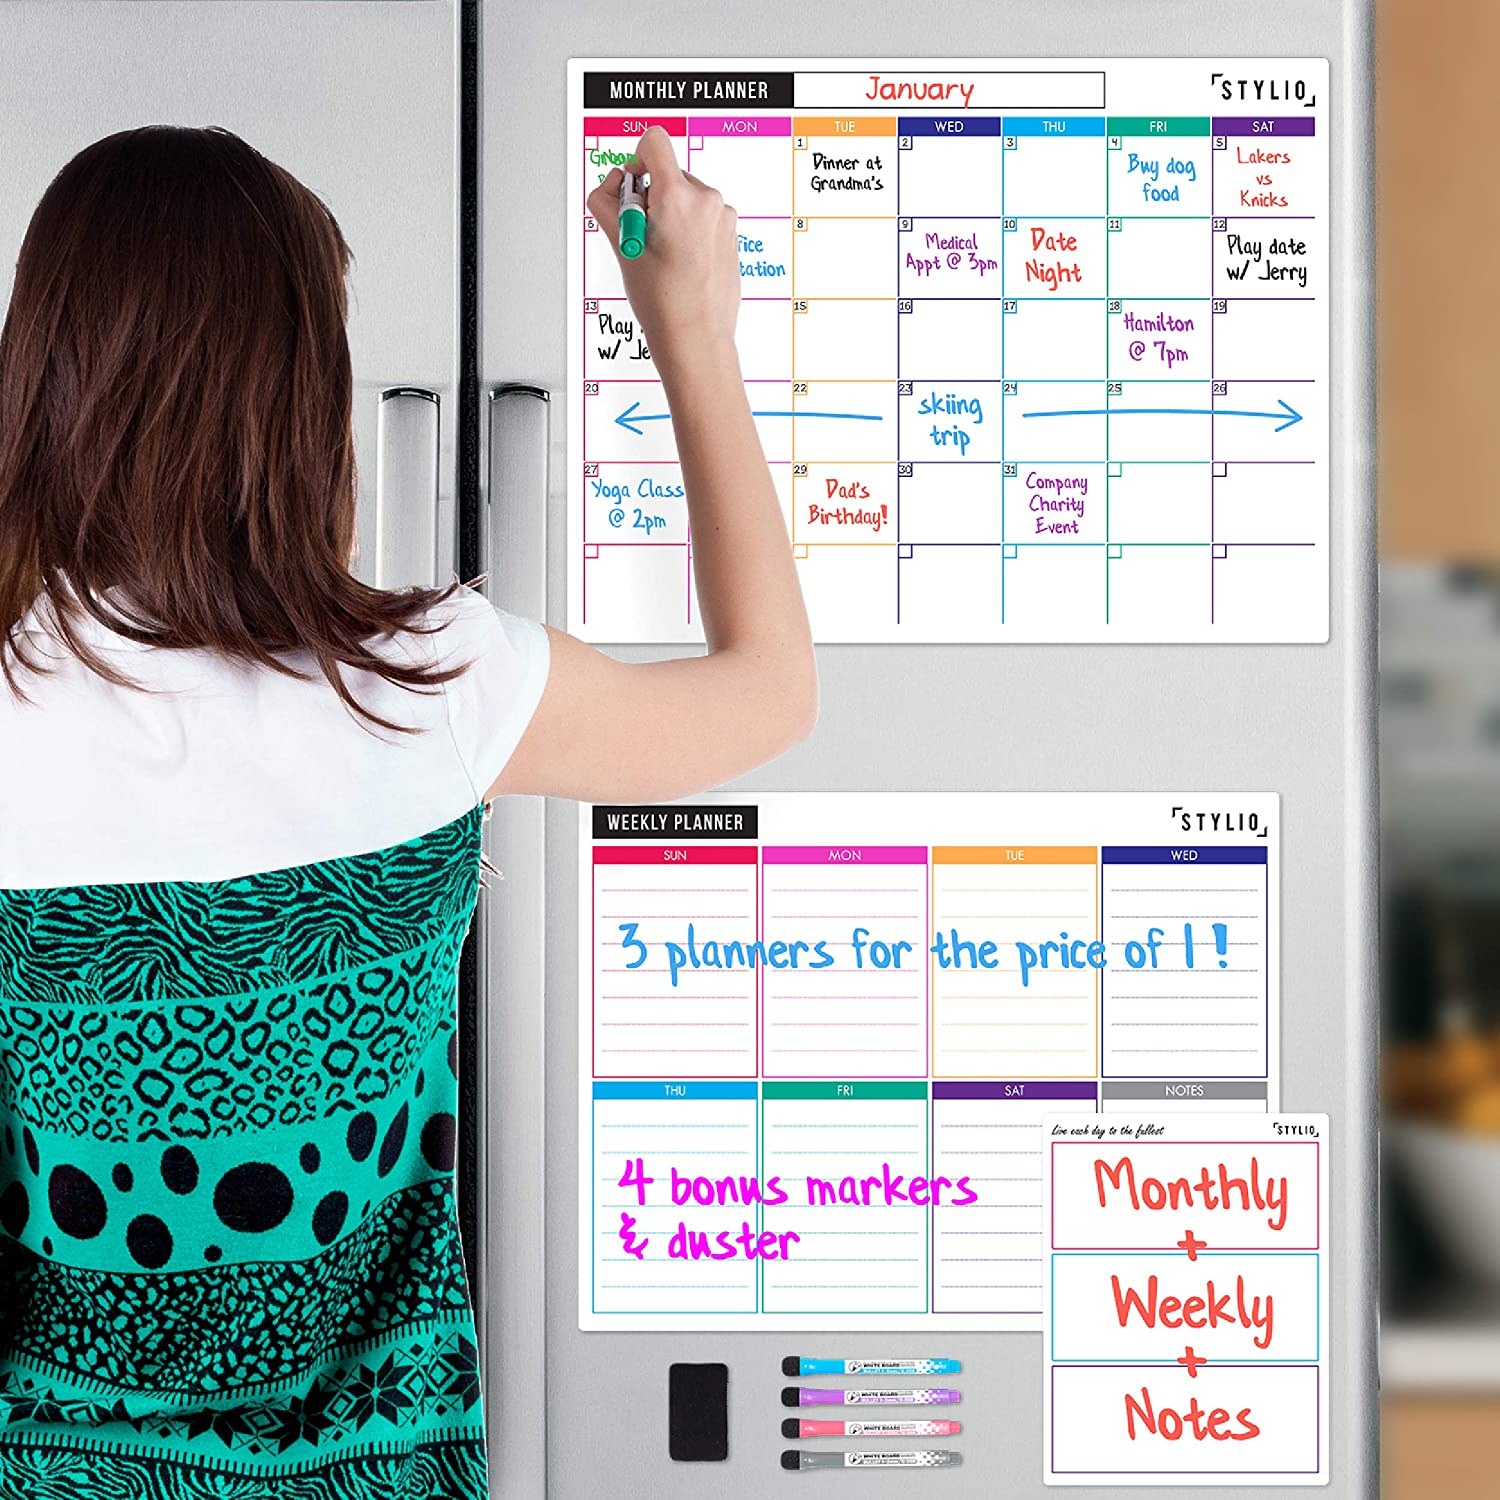 STYLIO Dry Erase Calendar Whiteboard. Set of 3 Magnetic Calendars for Refrigerator: Monthly, Weekly Organizer & Daily Notepad. Wall & Fridge Family Calendar. 4 Fine Point Markers & Eraser Included